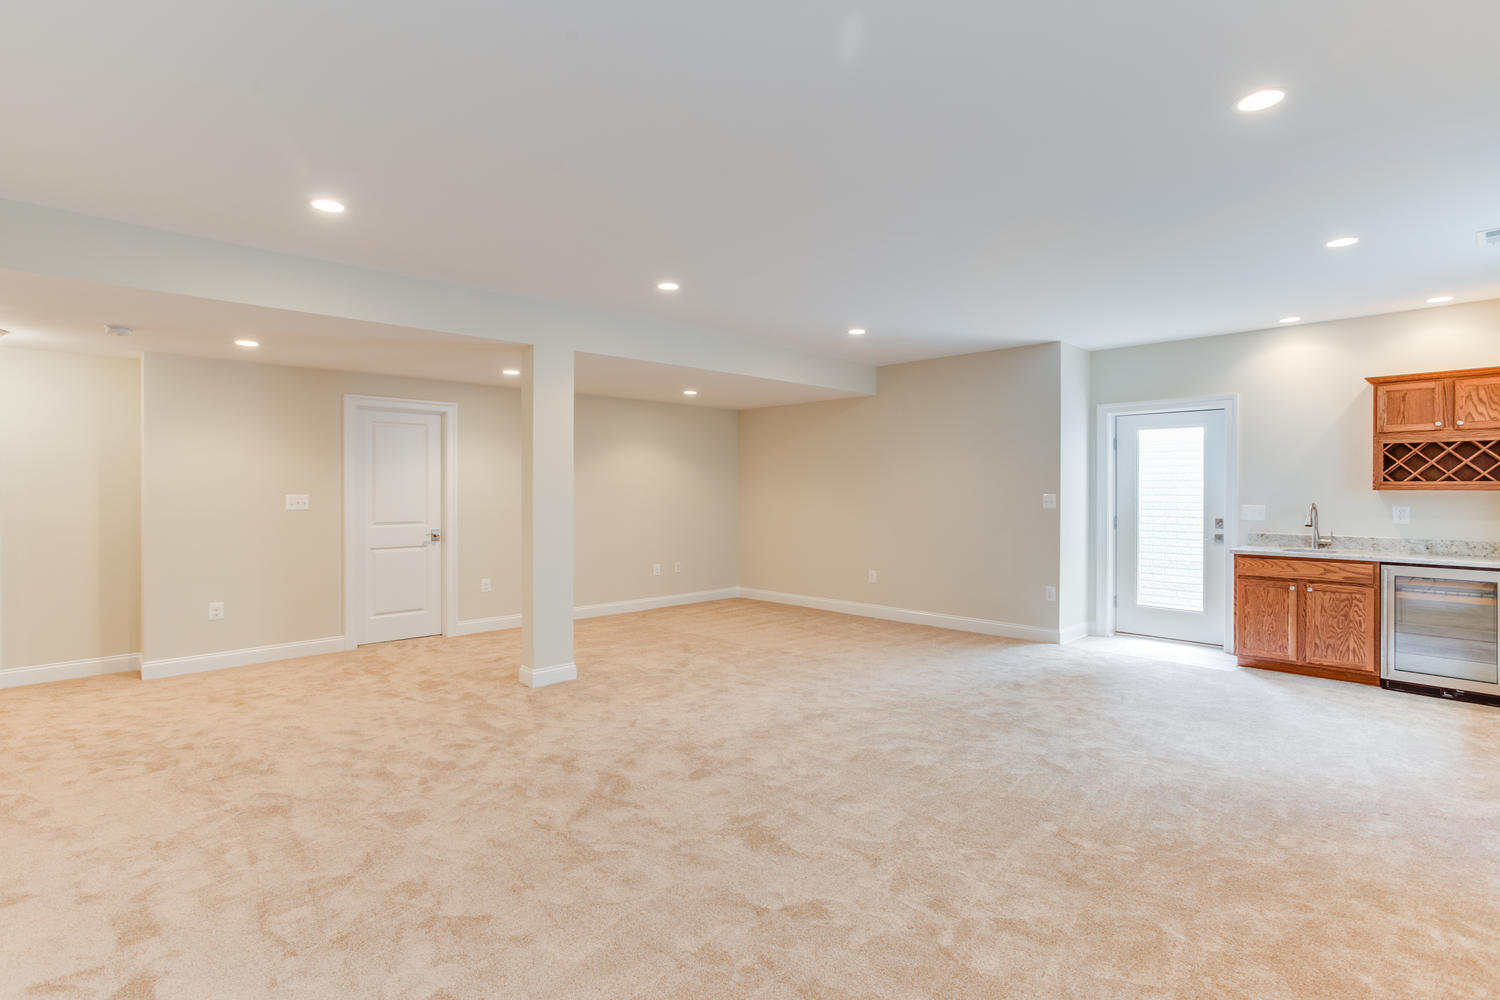 Basement Remodeling Tips